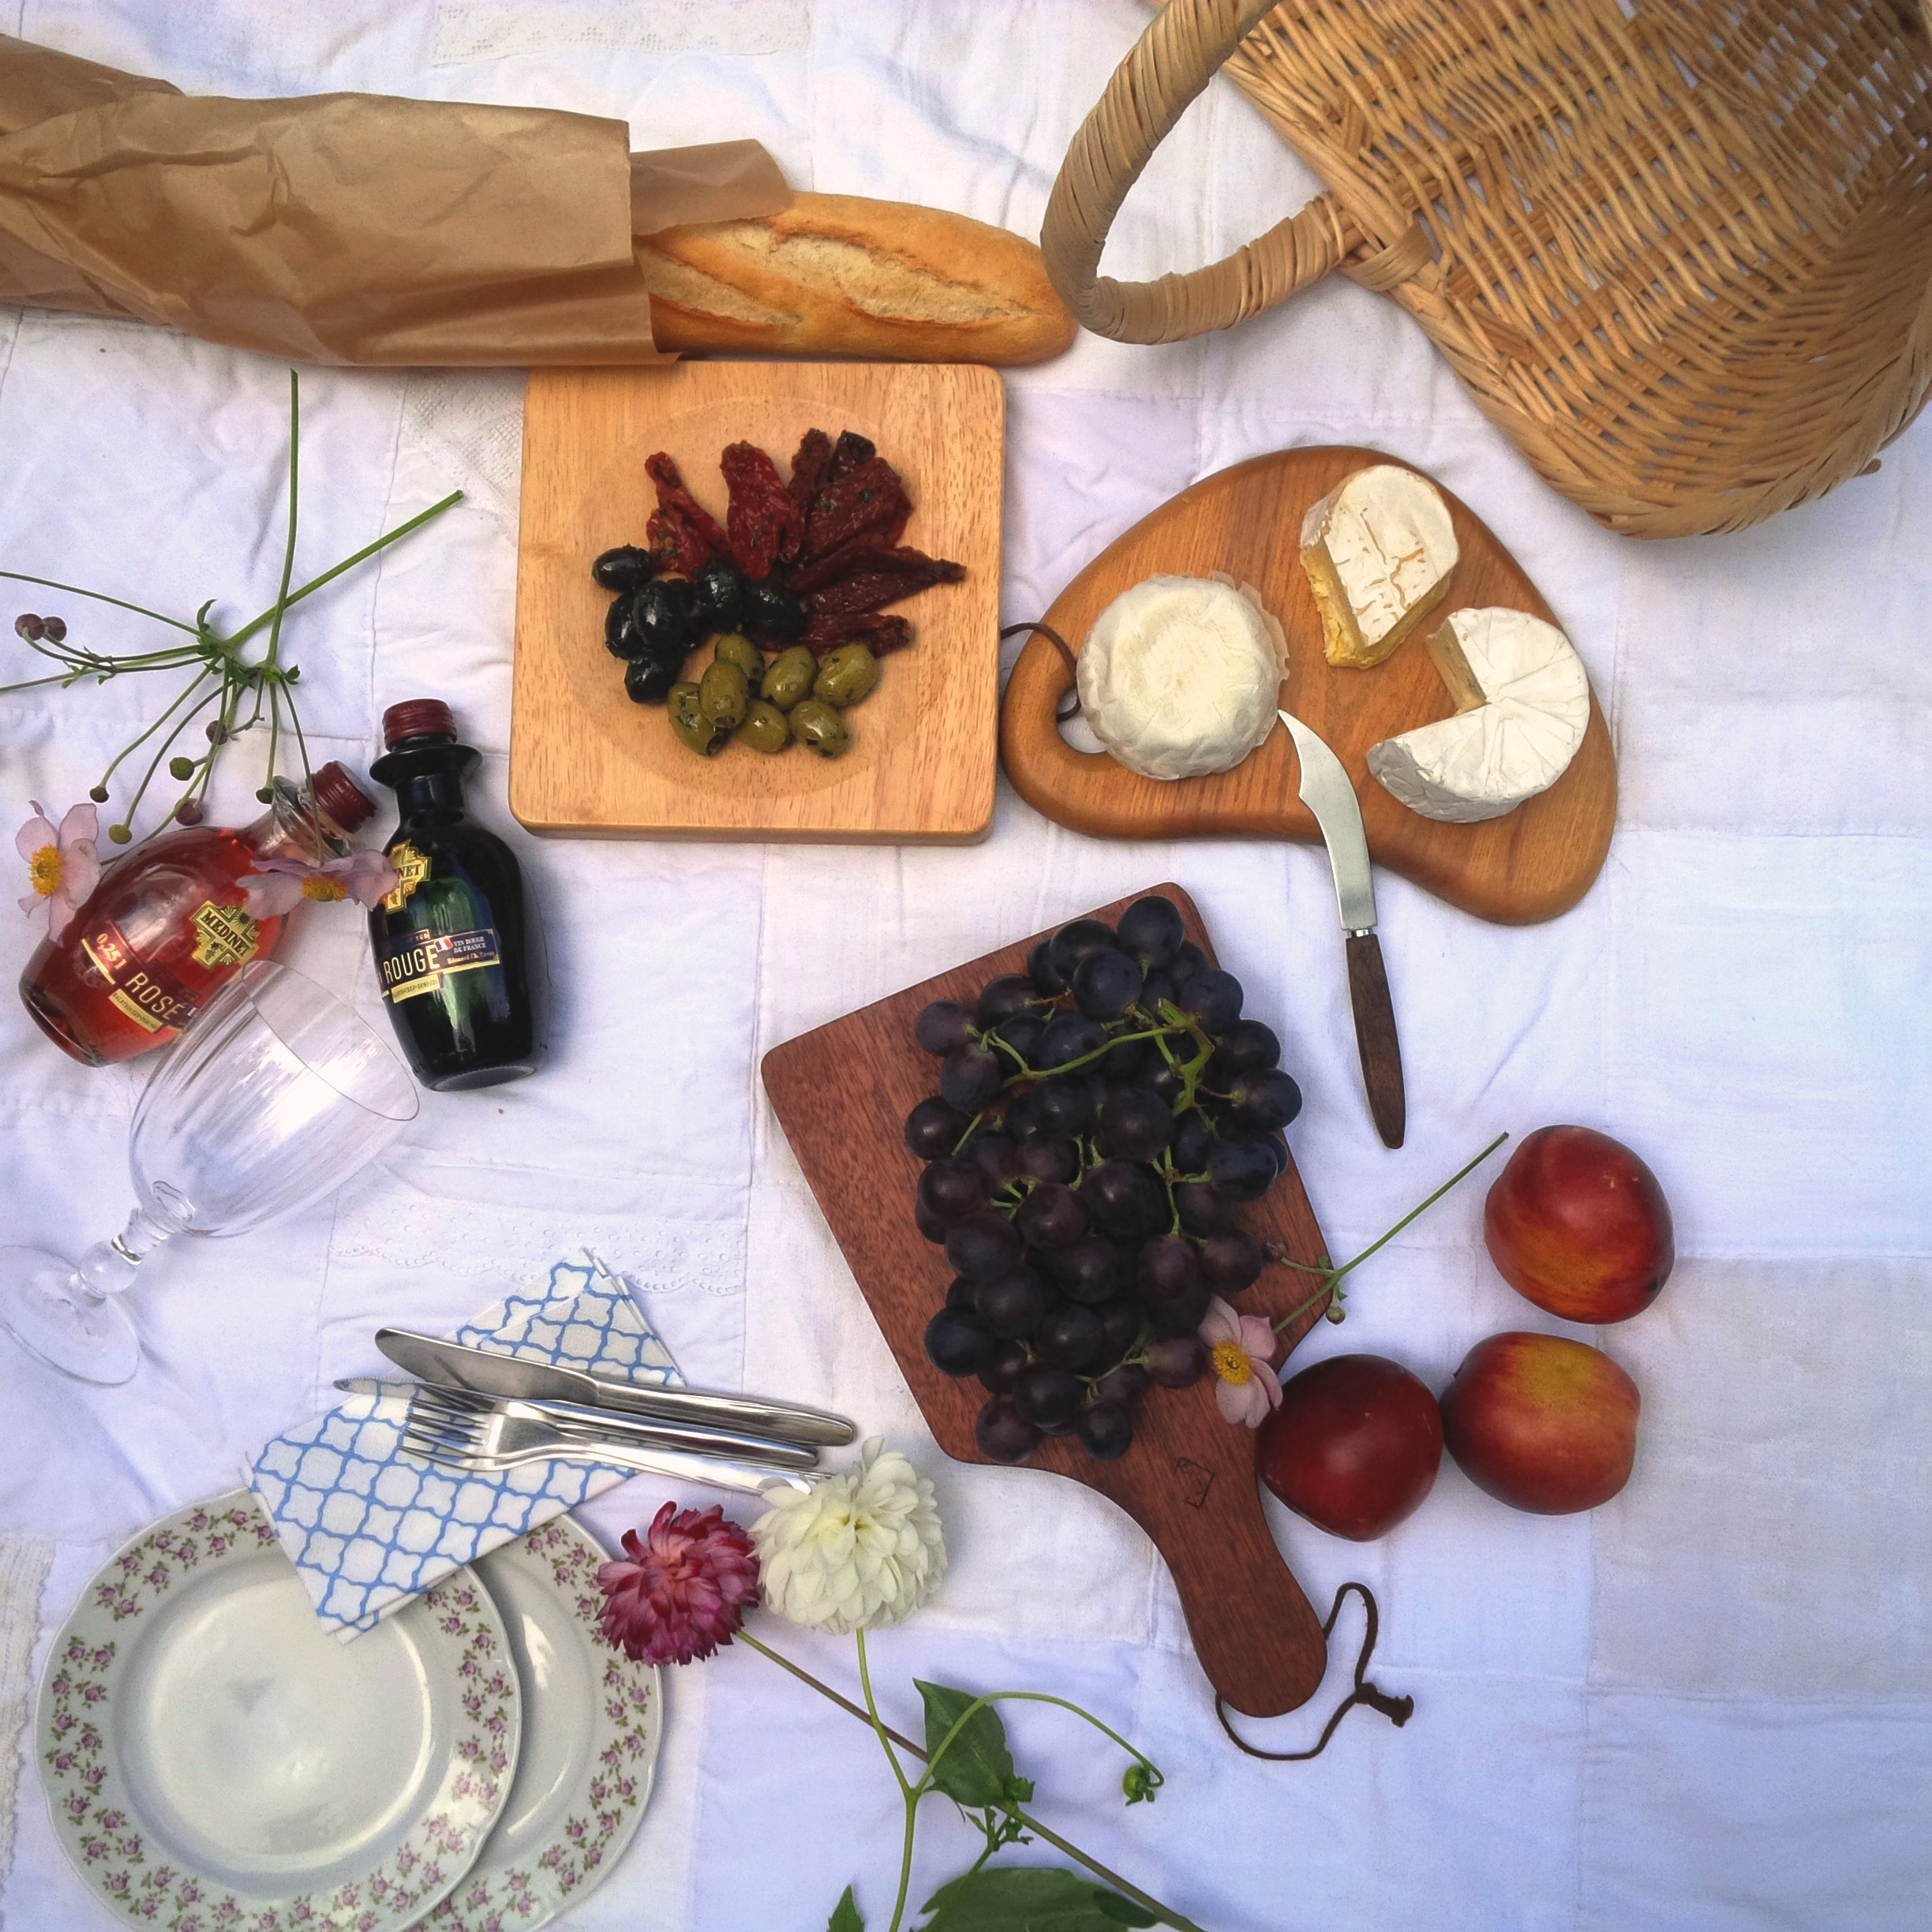 7 Steps To The Perfect Summer Picnic. Liebe was ist - perfektes Sommer-Picknick. Inspiration. Lifestyle Advice. Tipps und Tricks (6)